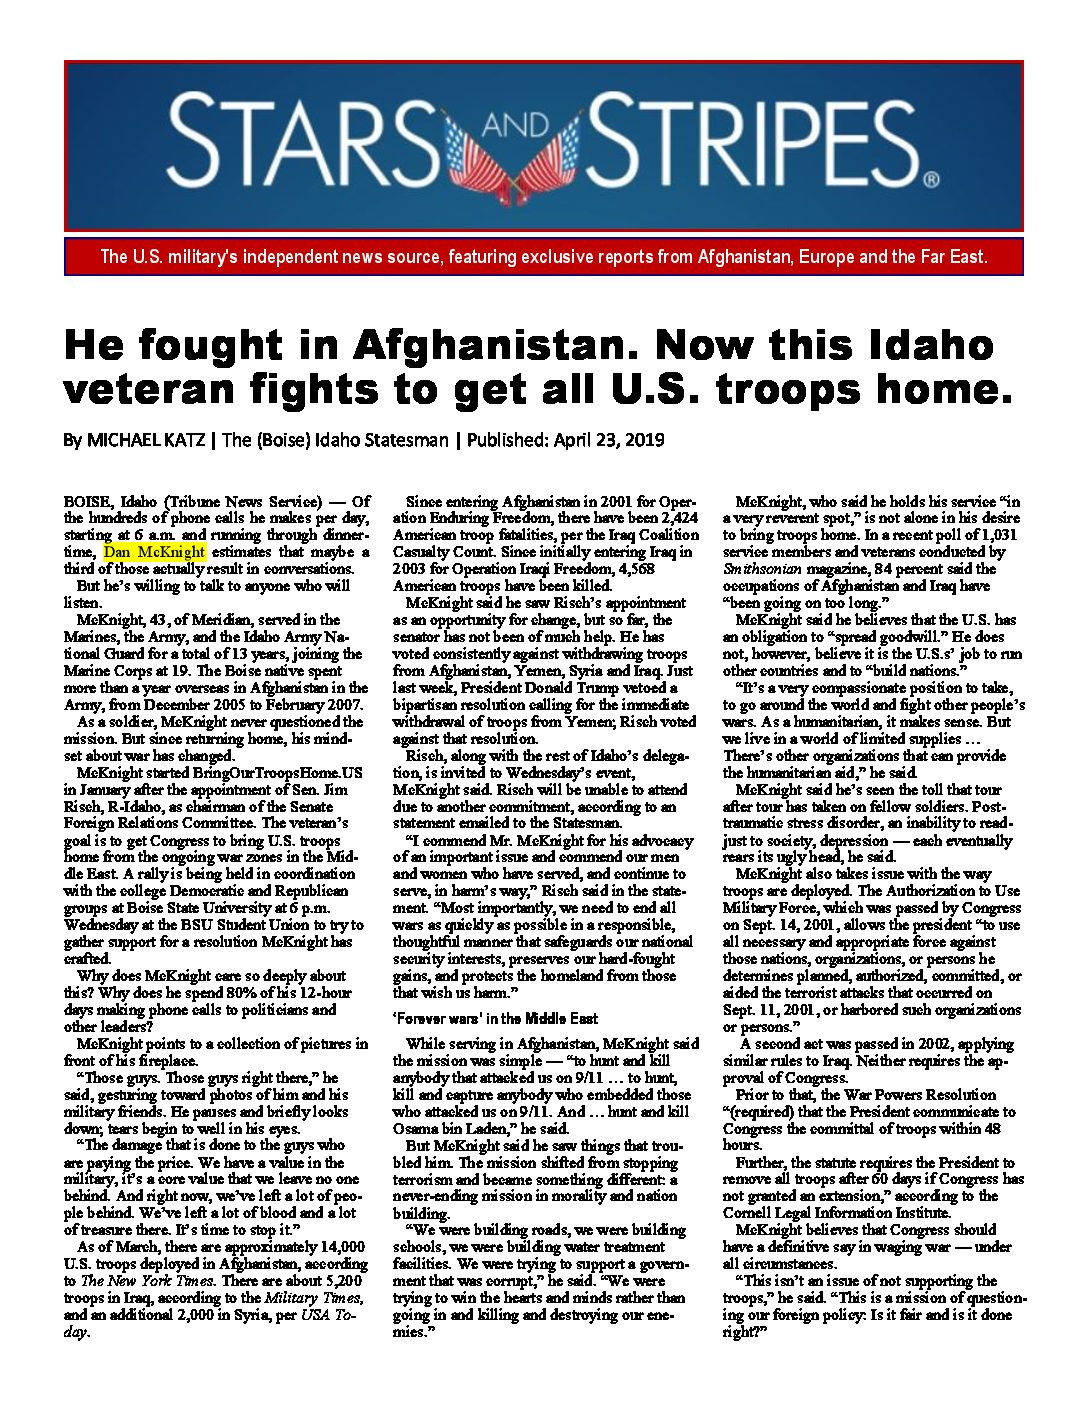 Stars and Stripes – He fought in Afganistan. Now this Idaho veteran fights to get all U.S. troops home